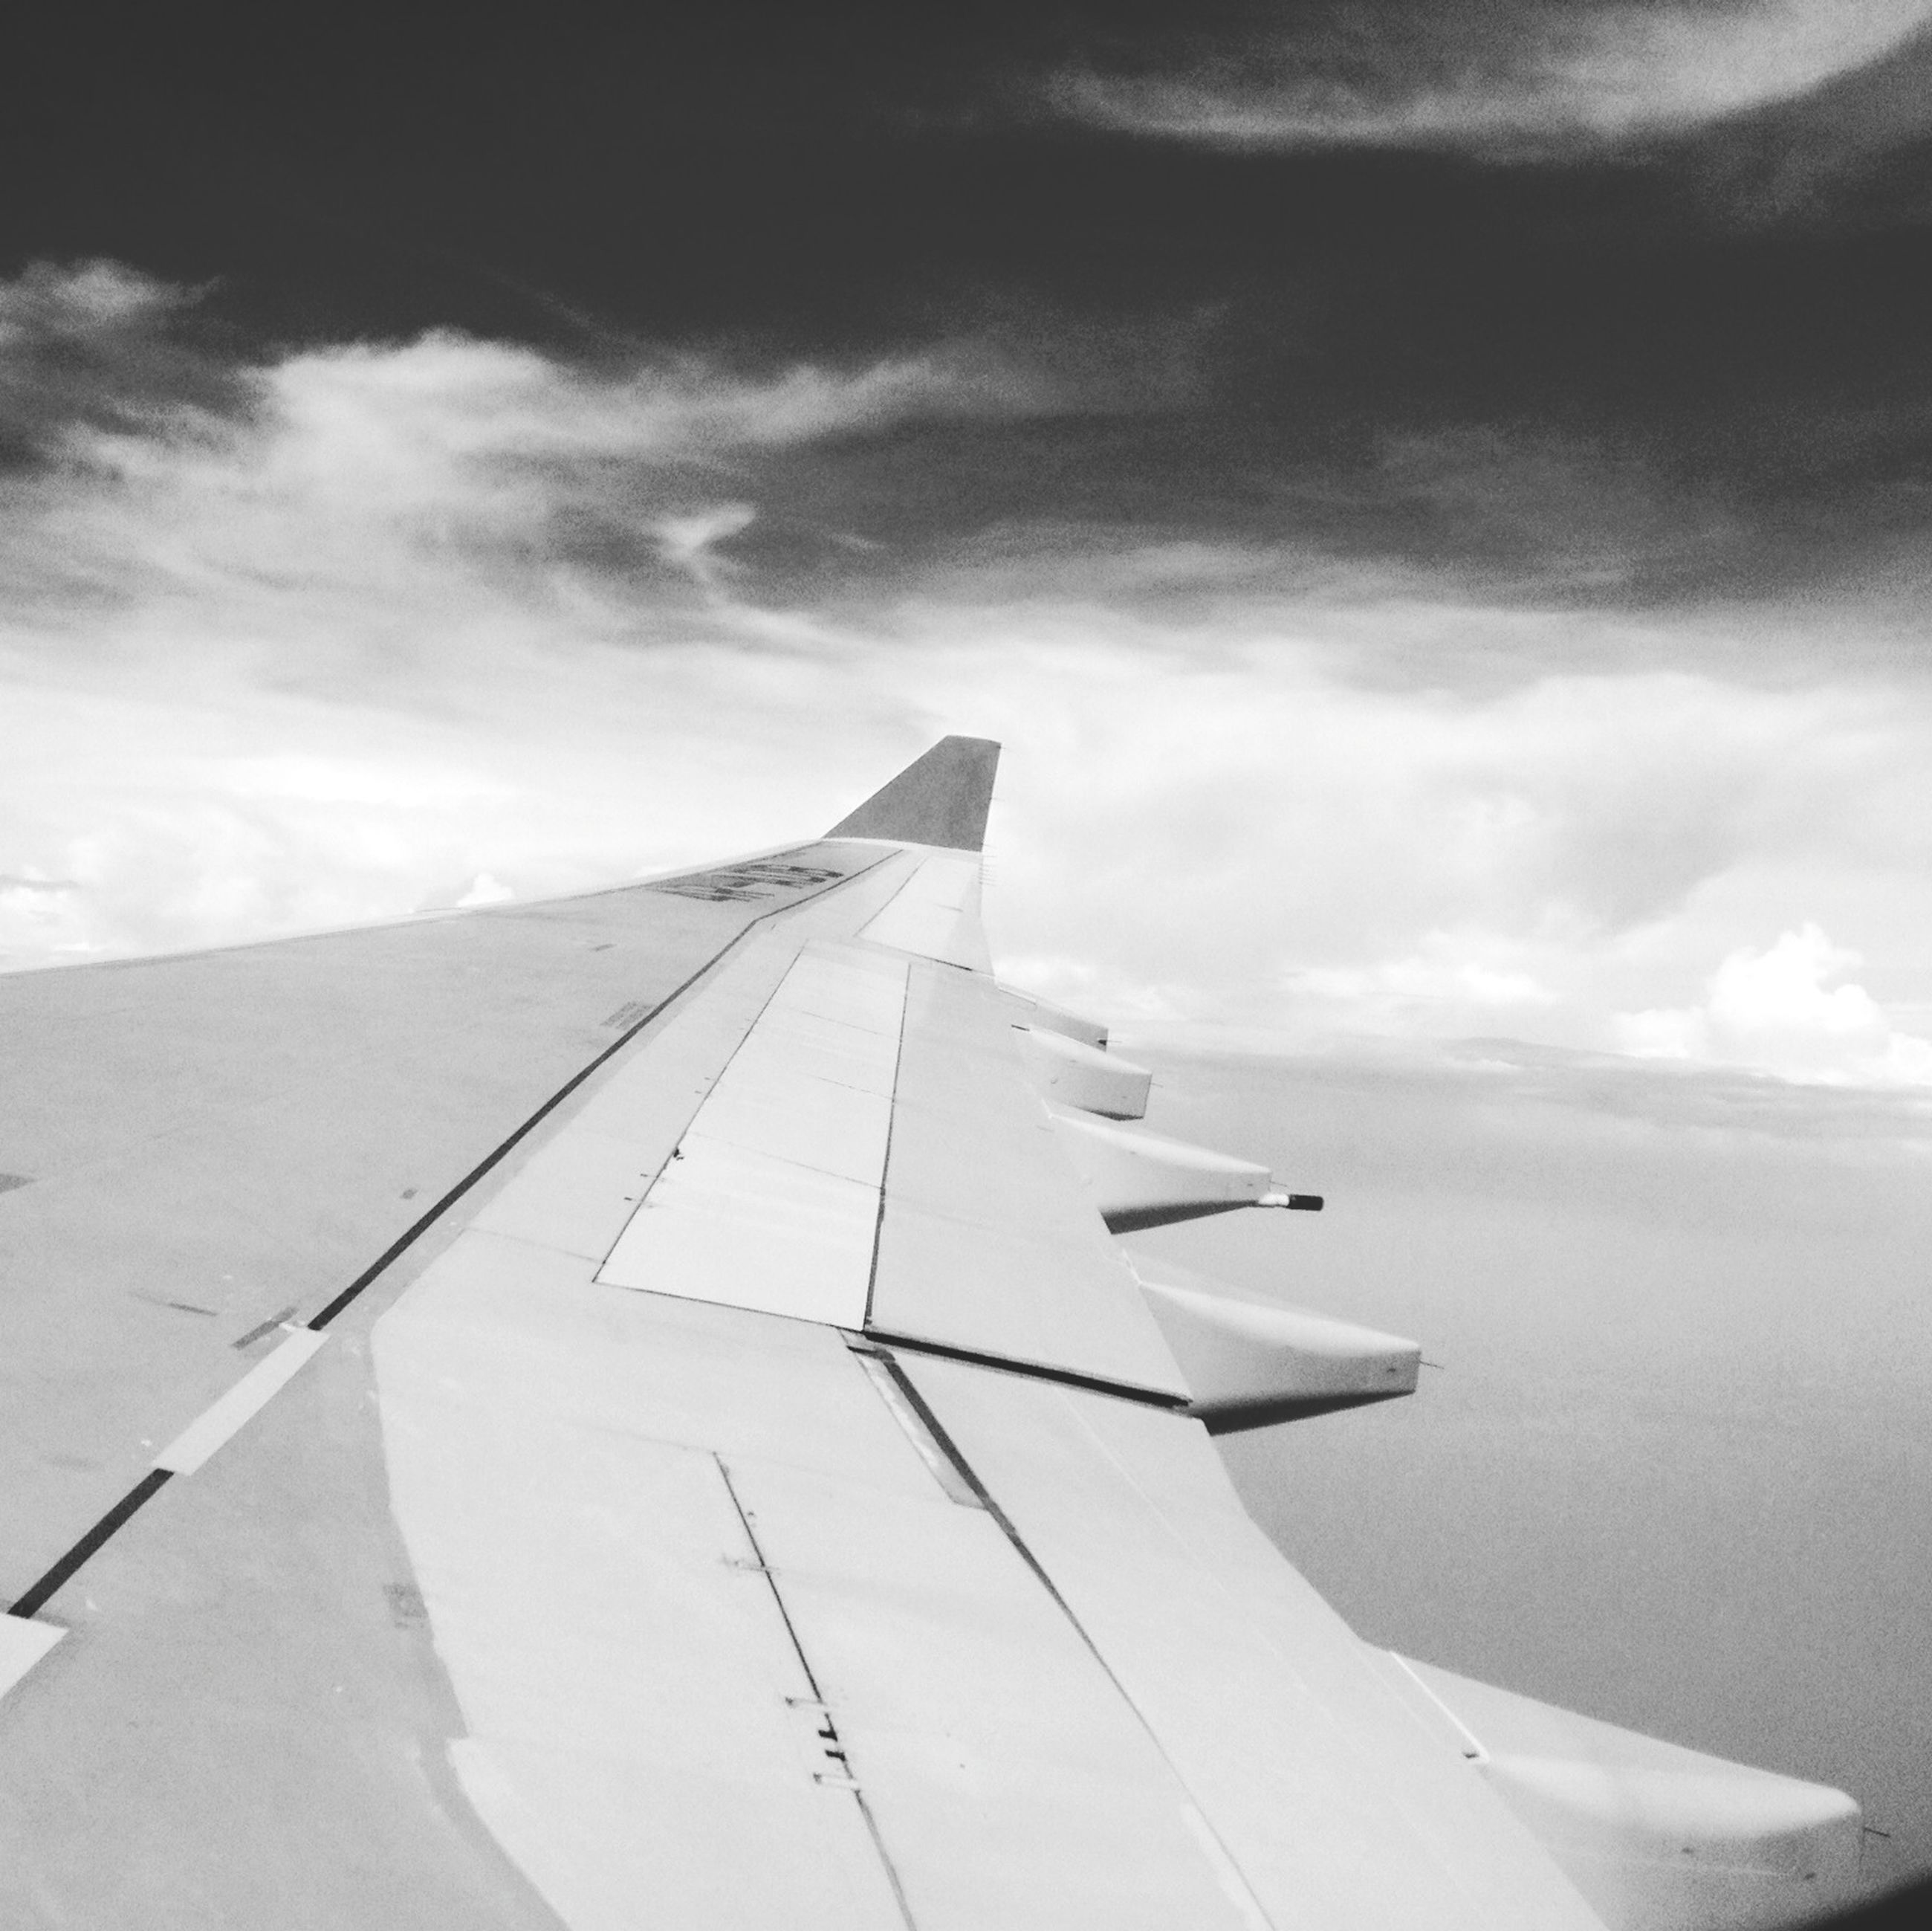 sky, airplane, air vehicle, flying, transportation, cloud - sky, aircraft wing, part of, cropped, cloud, low angle view, mode of transport, cloudy, mid-air, day, outdoors, travel, no people, nature, white color